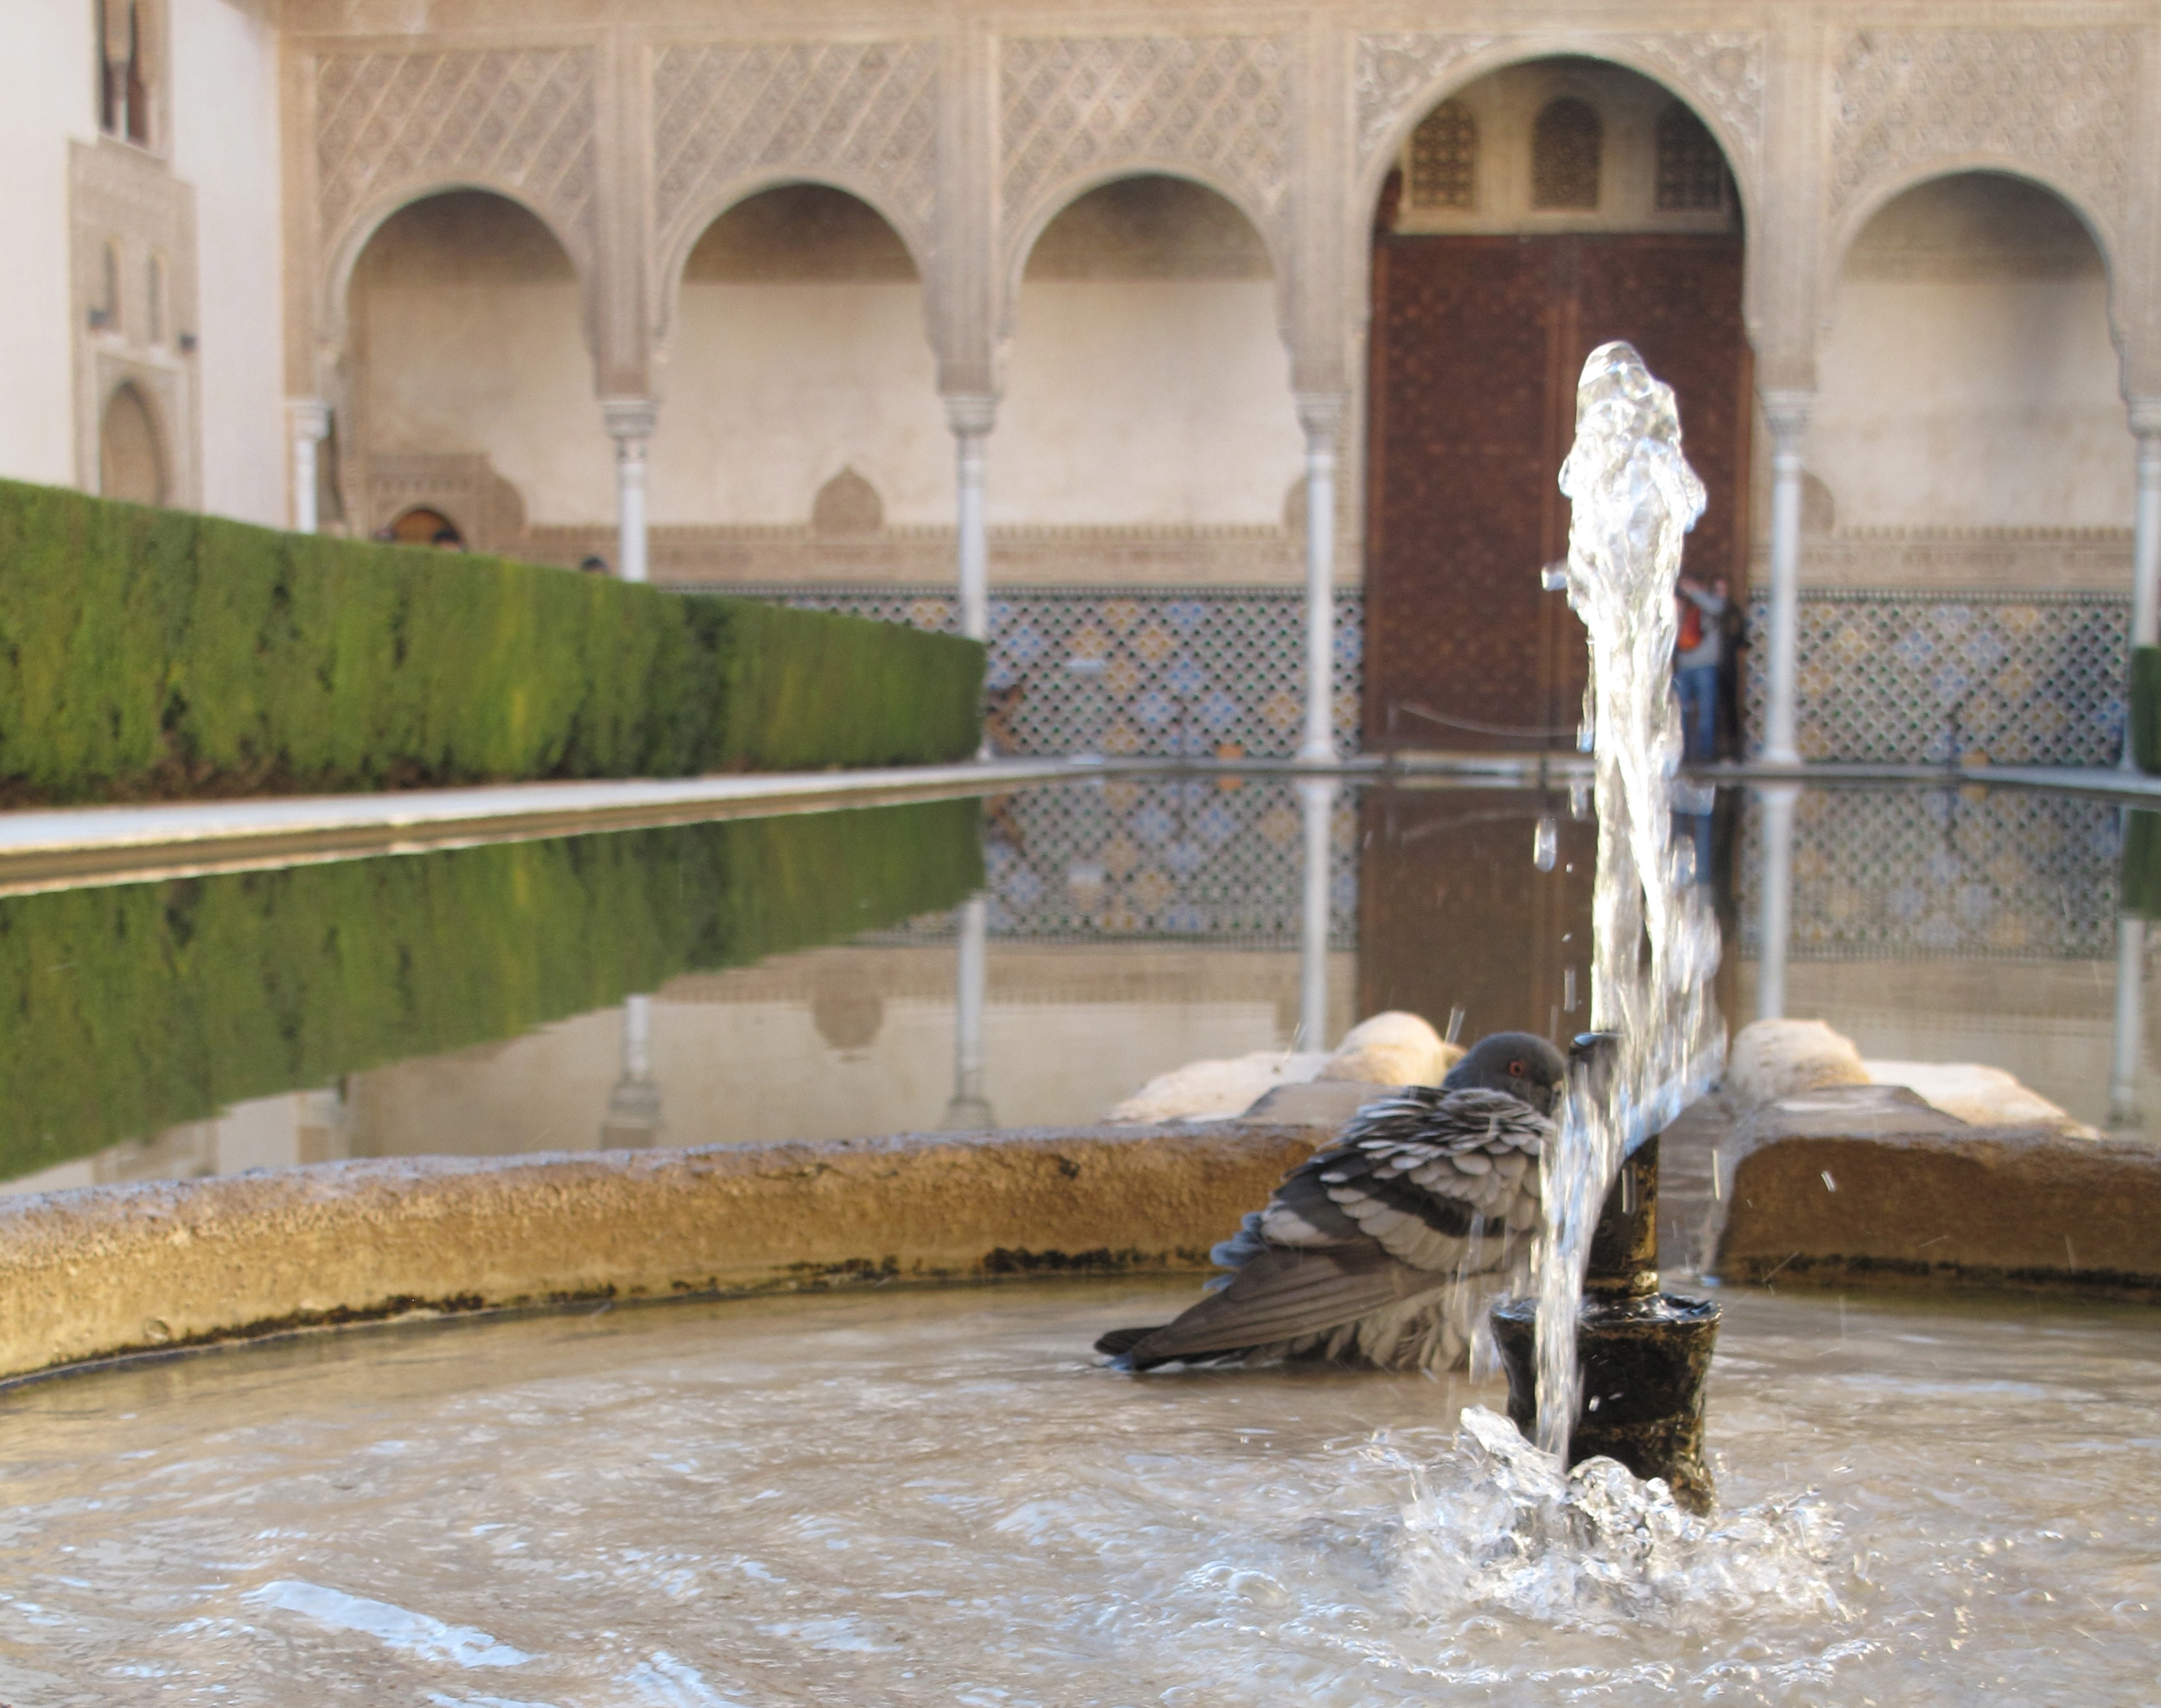 Pigeon bathing in a fountain in the reflecting pool at Alhambra